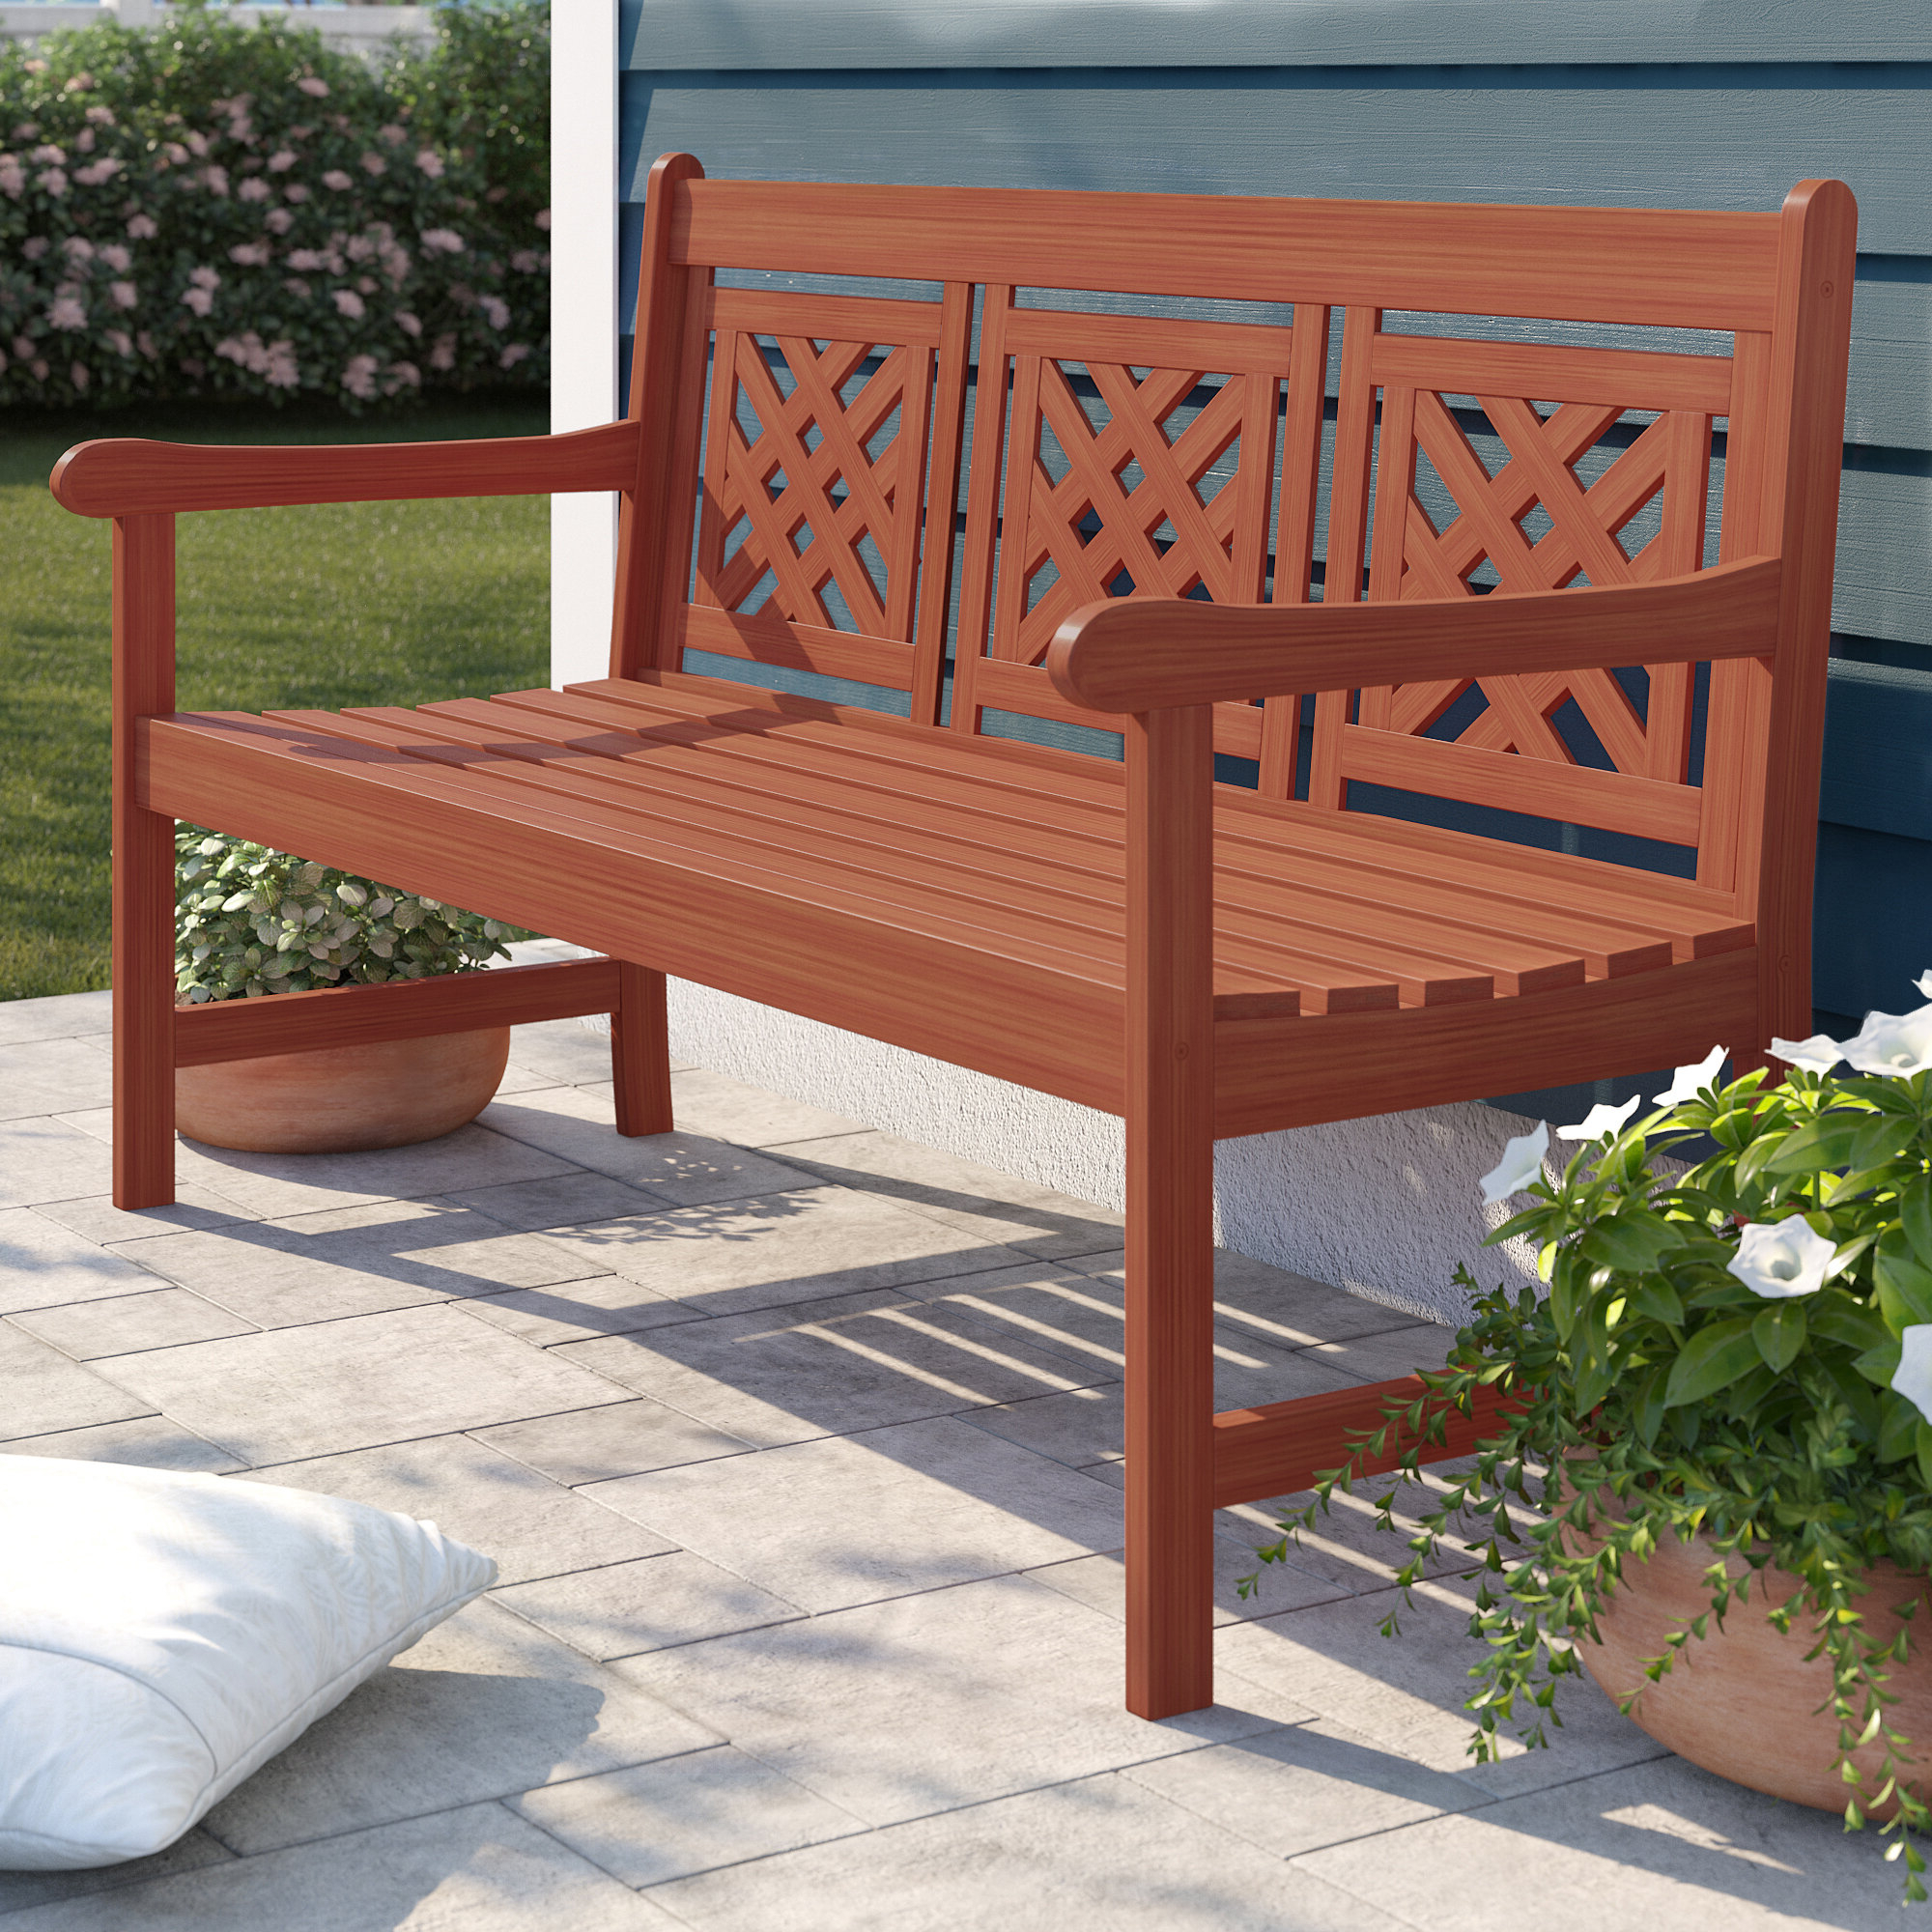 Amabel Patio Plaid Wooden Garden Bench For Preferred Amabel Patio Diamond Wooden Garden Benches (View 3 of 30)